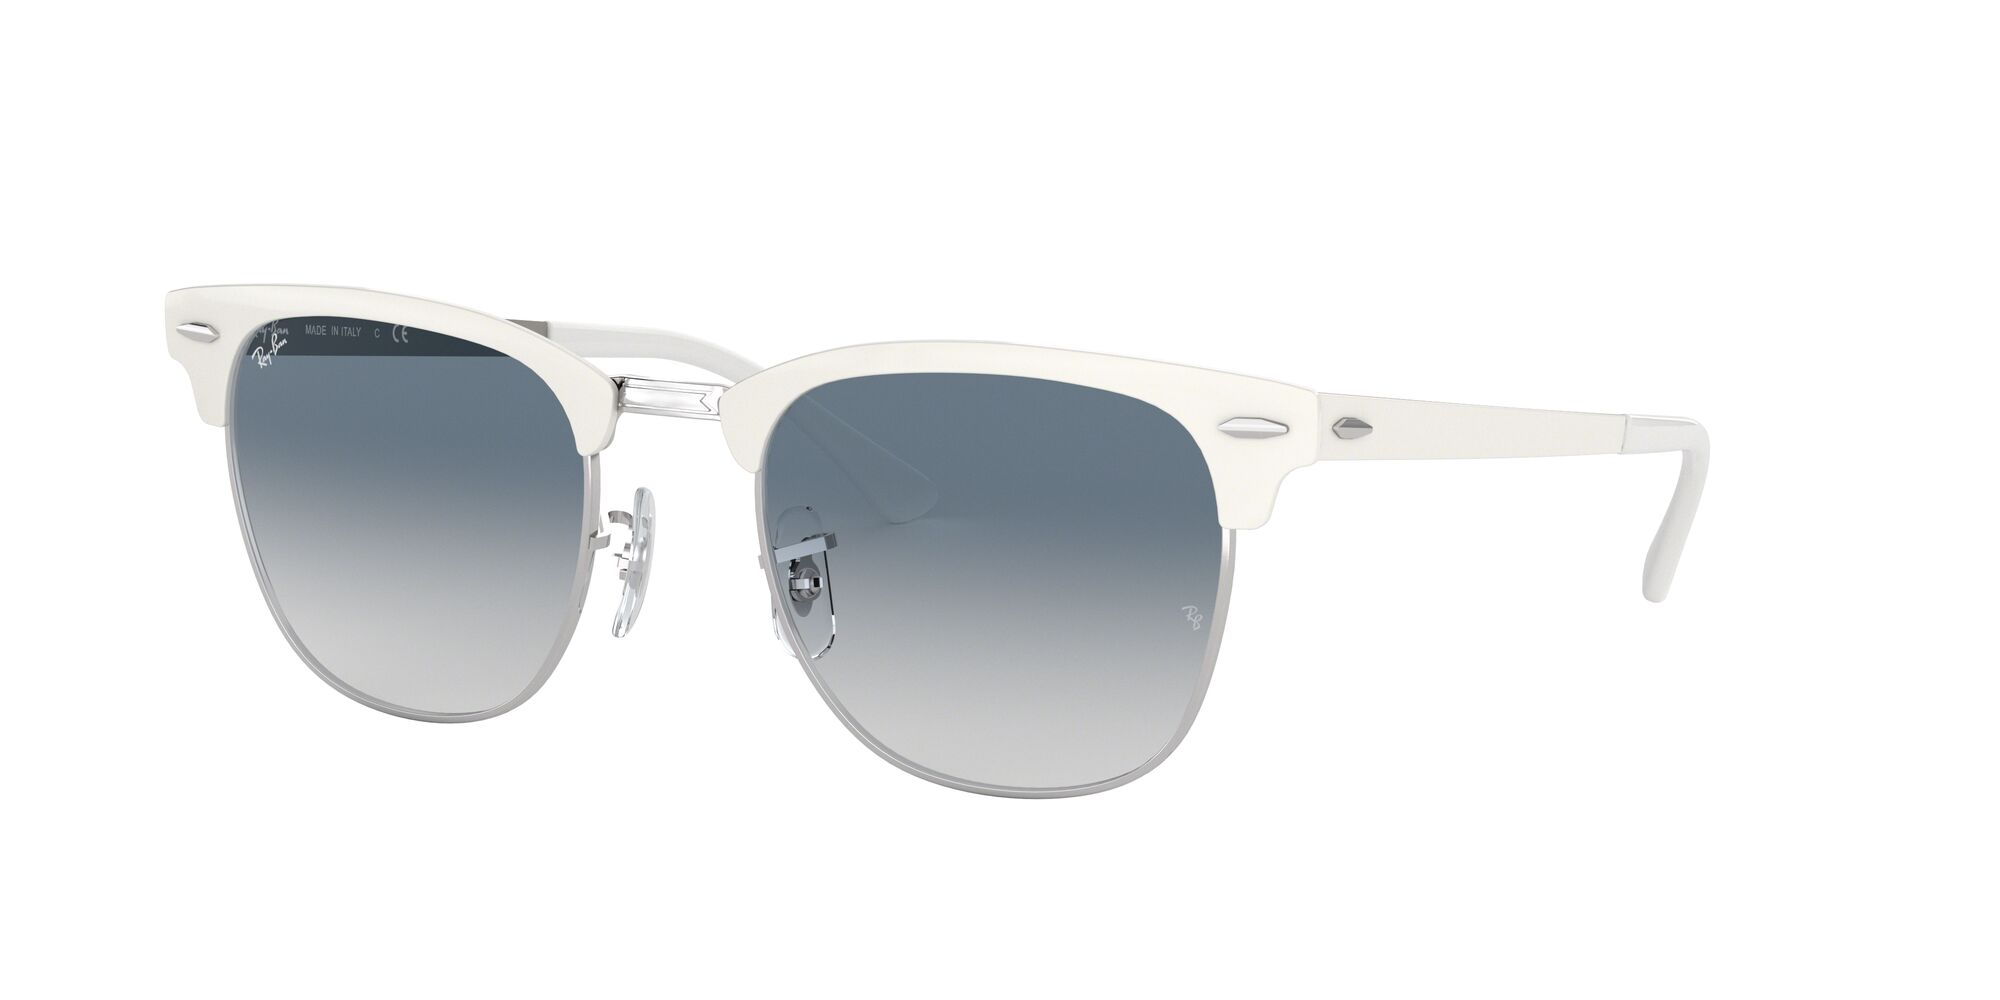 Angle_Left01 Ray-Ban Ray-Ban 0RB3716 90883F 51/21 Zilver/Blauw